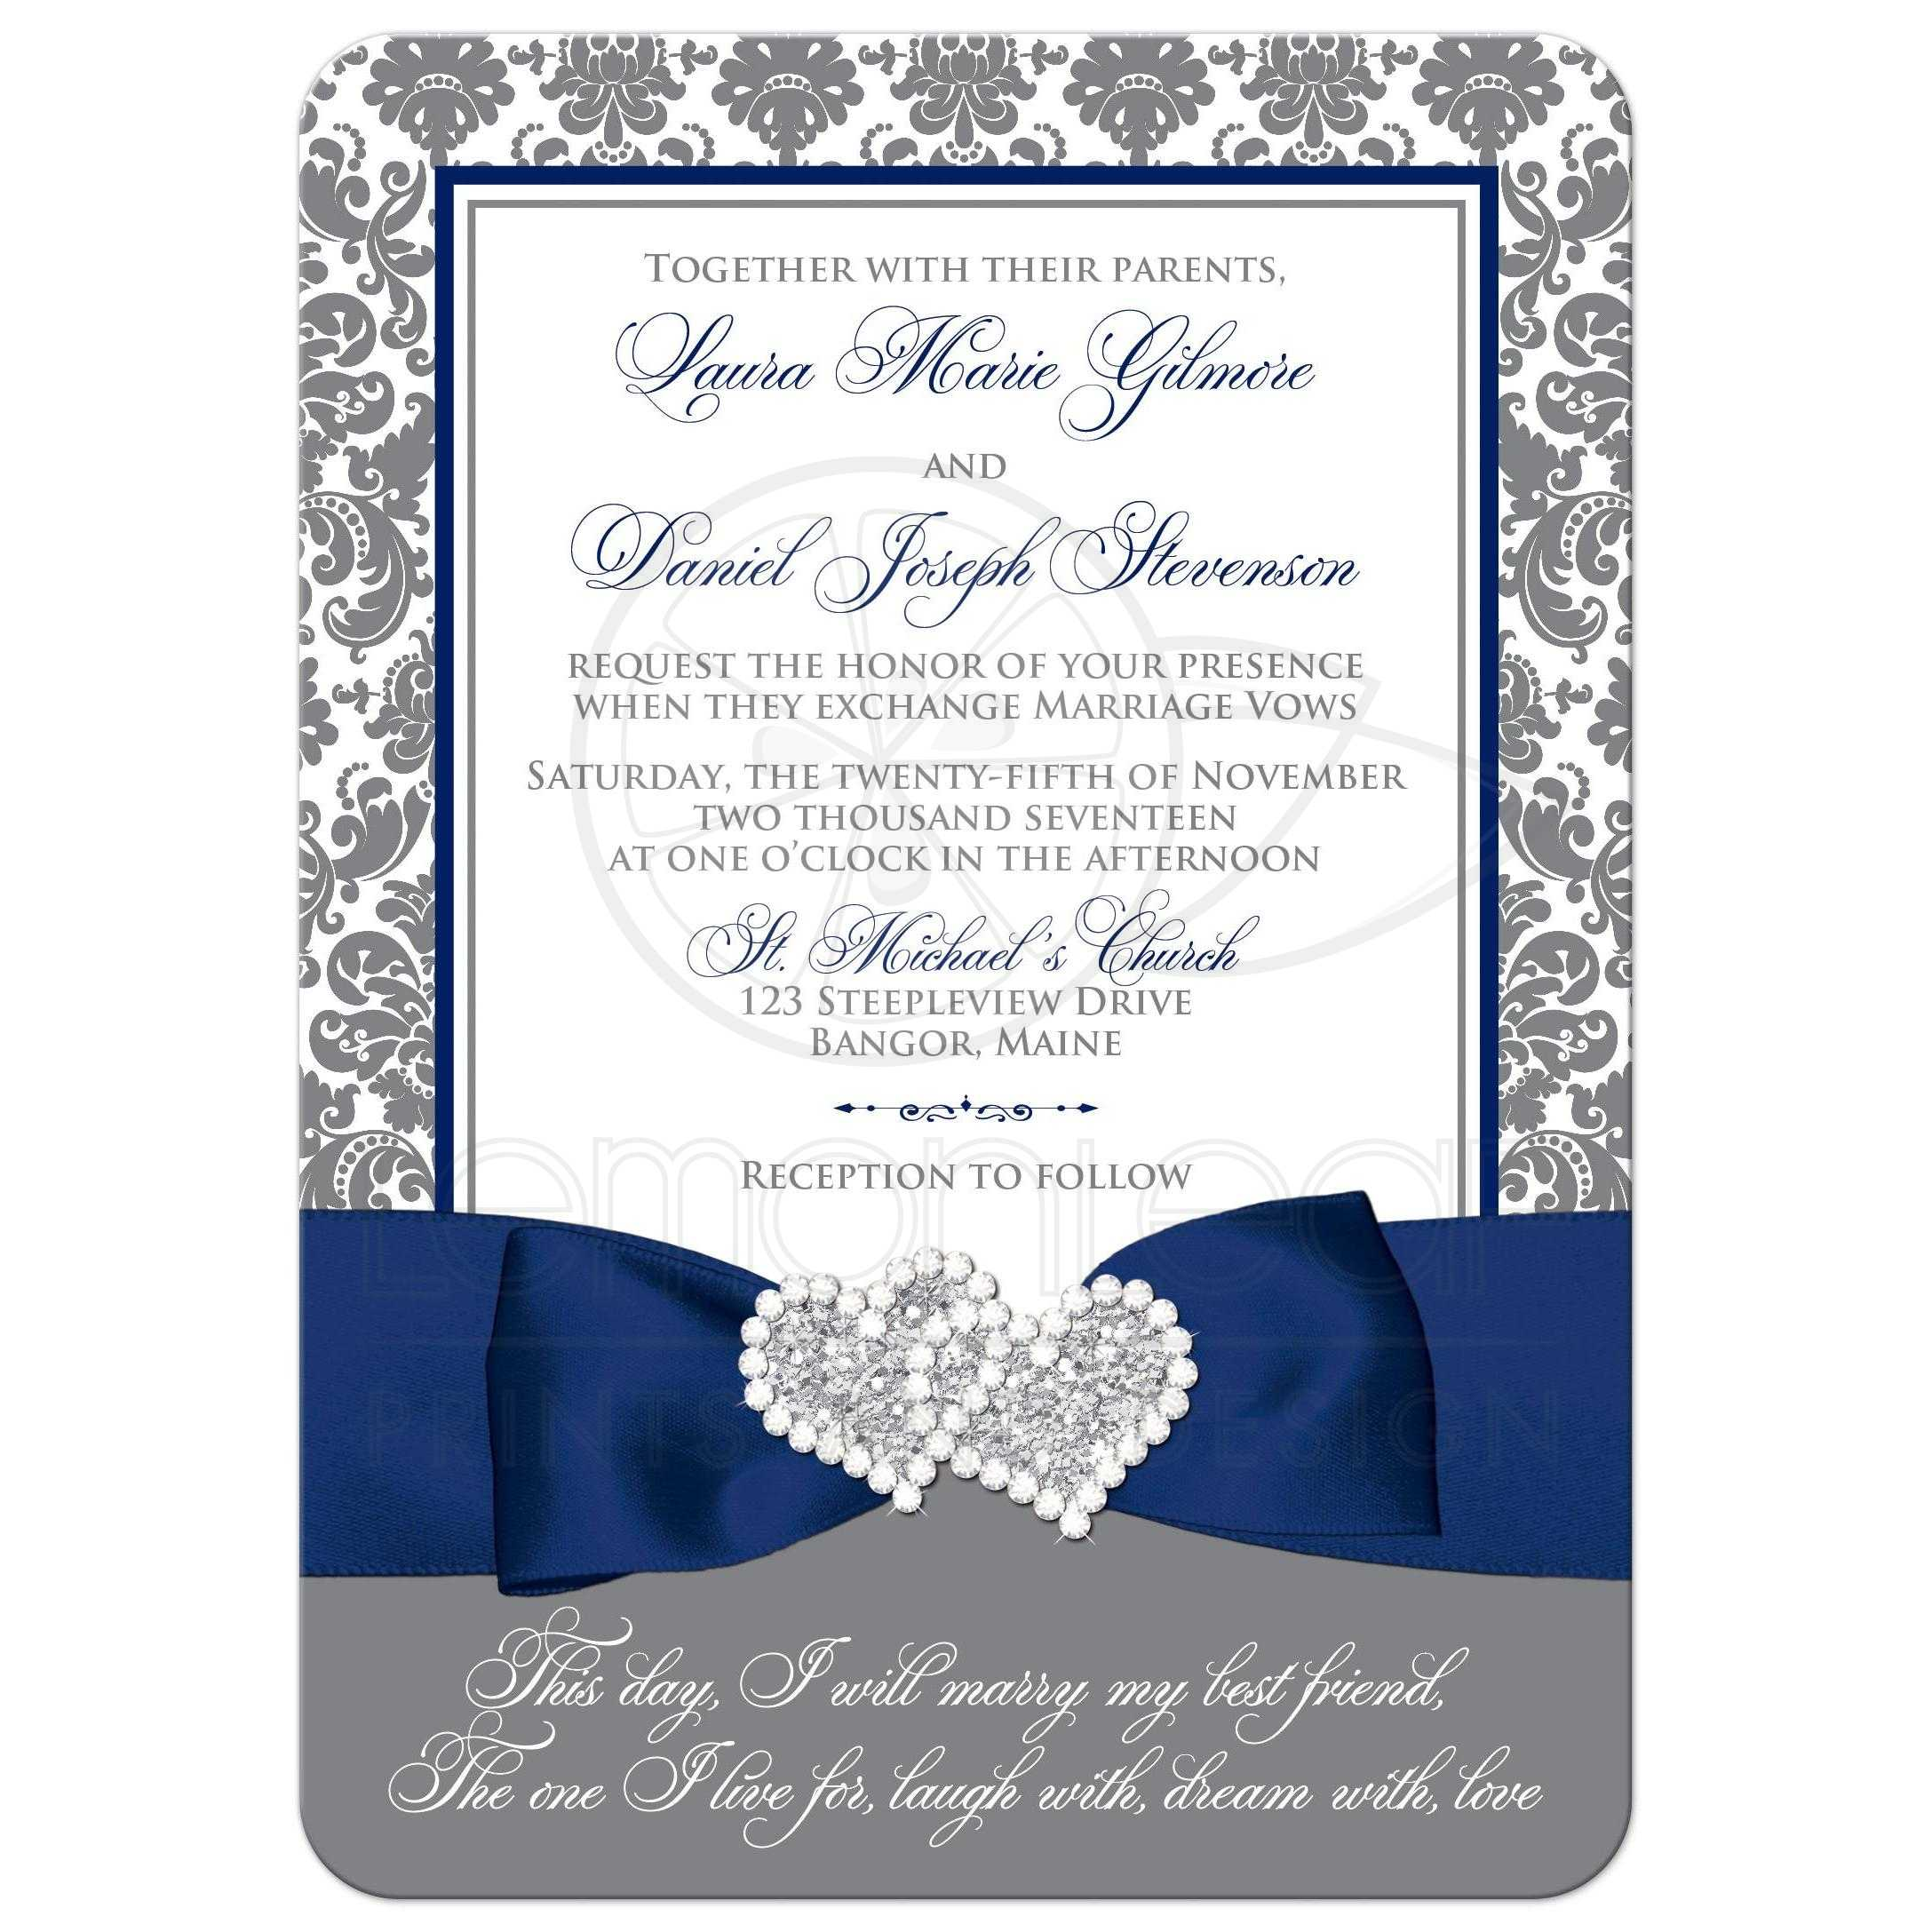 Gray Navy And White Bedroom: Navy Blue, White, And Gray Damask Wedding Invitation